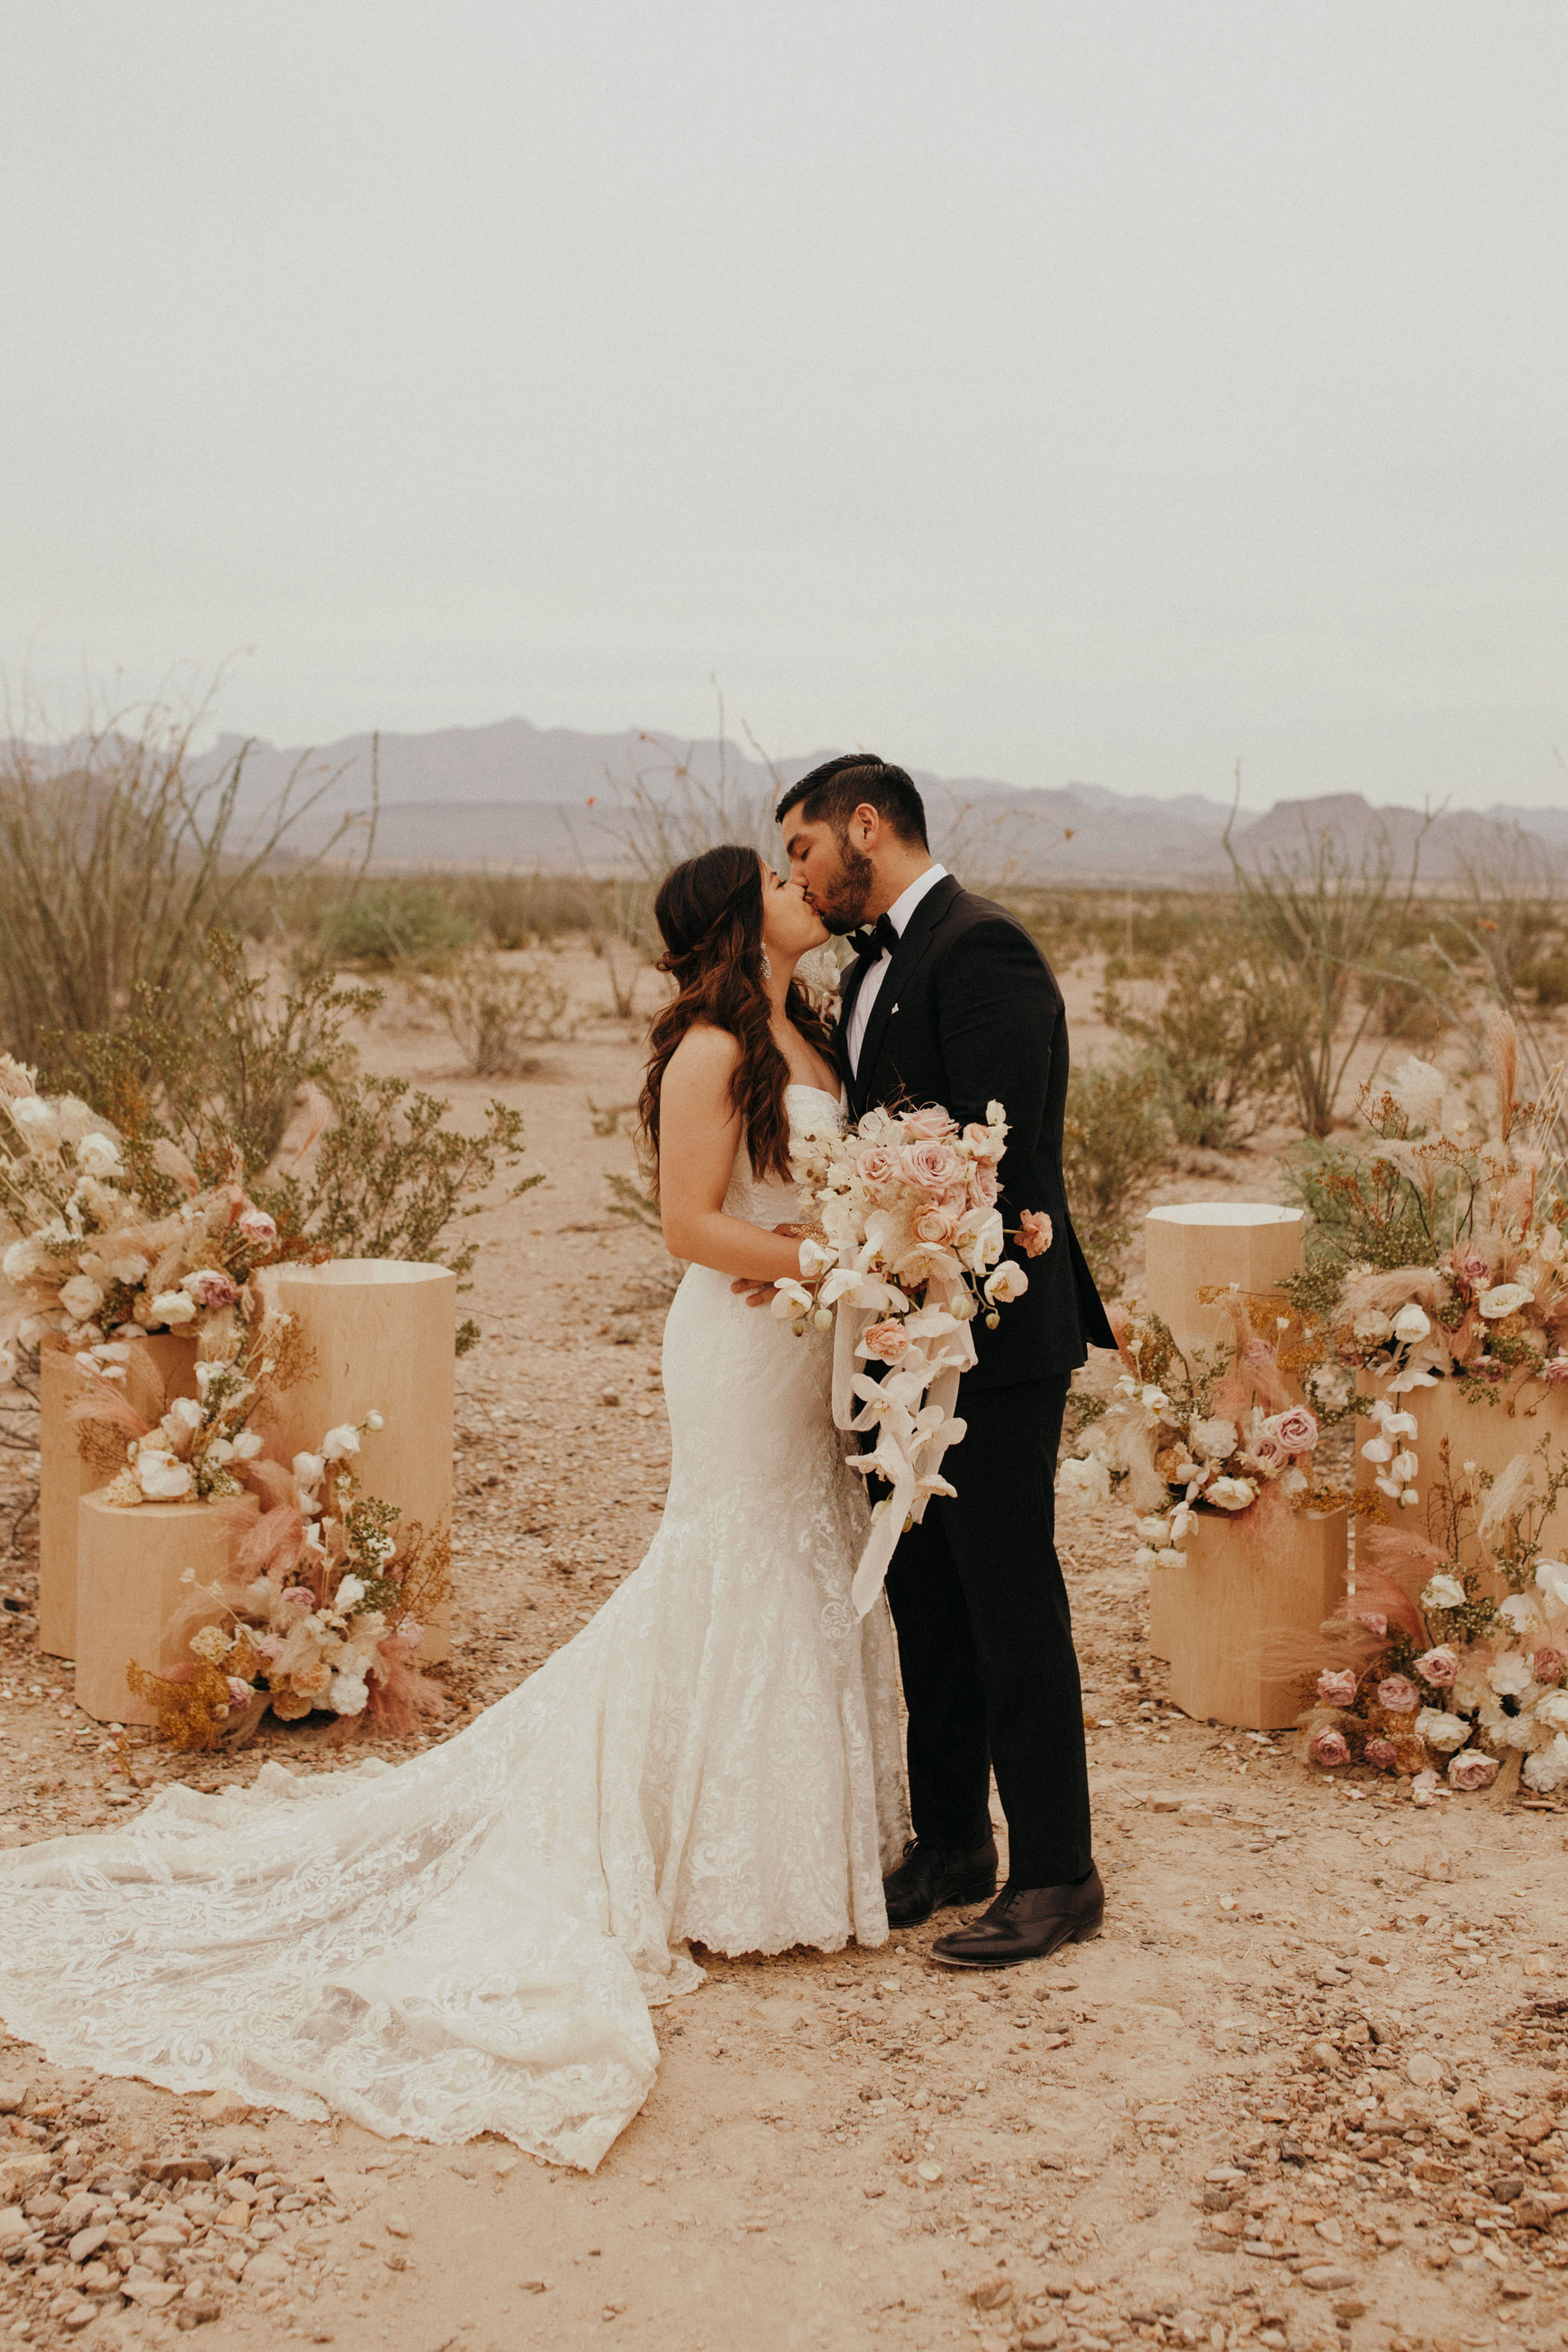 Husband and wife posing in front of a desert landscape